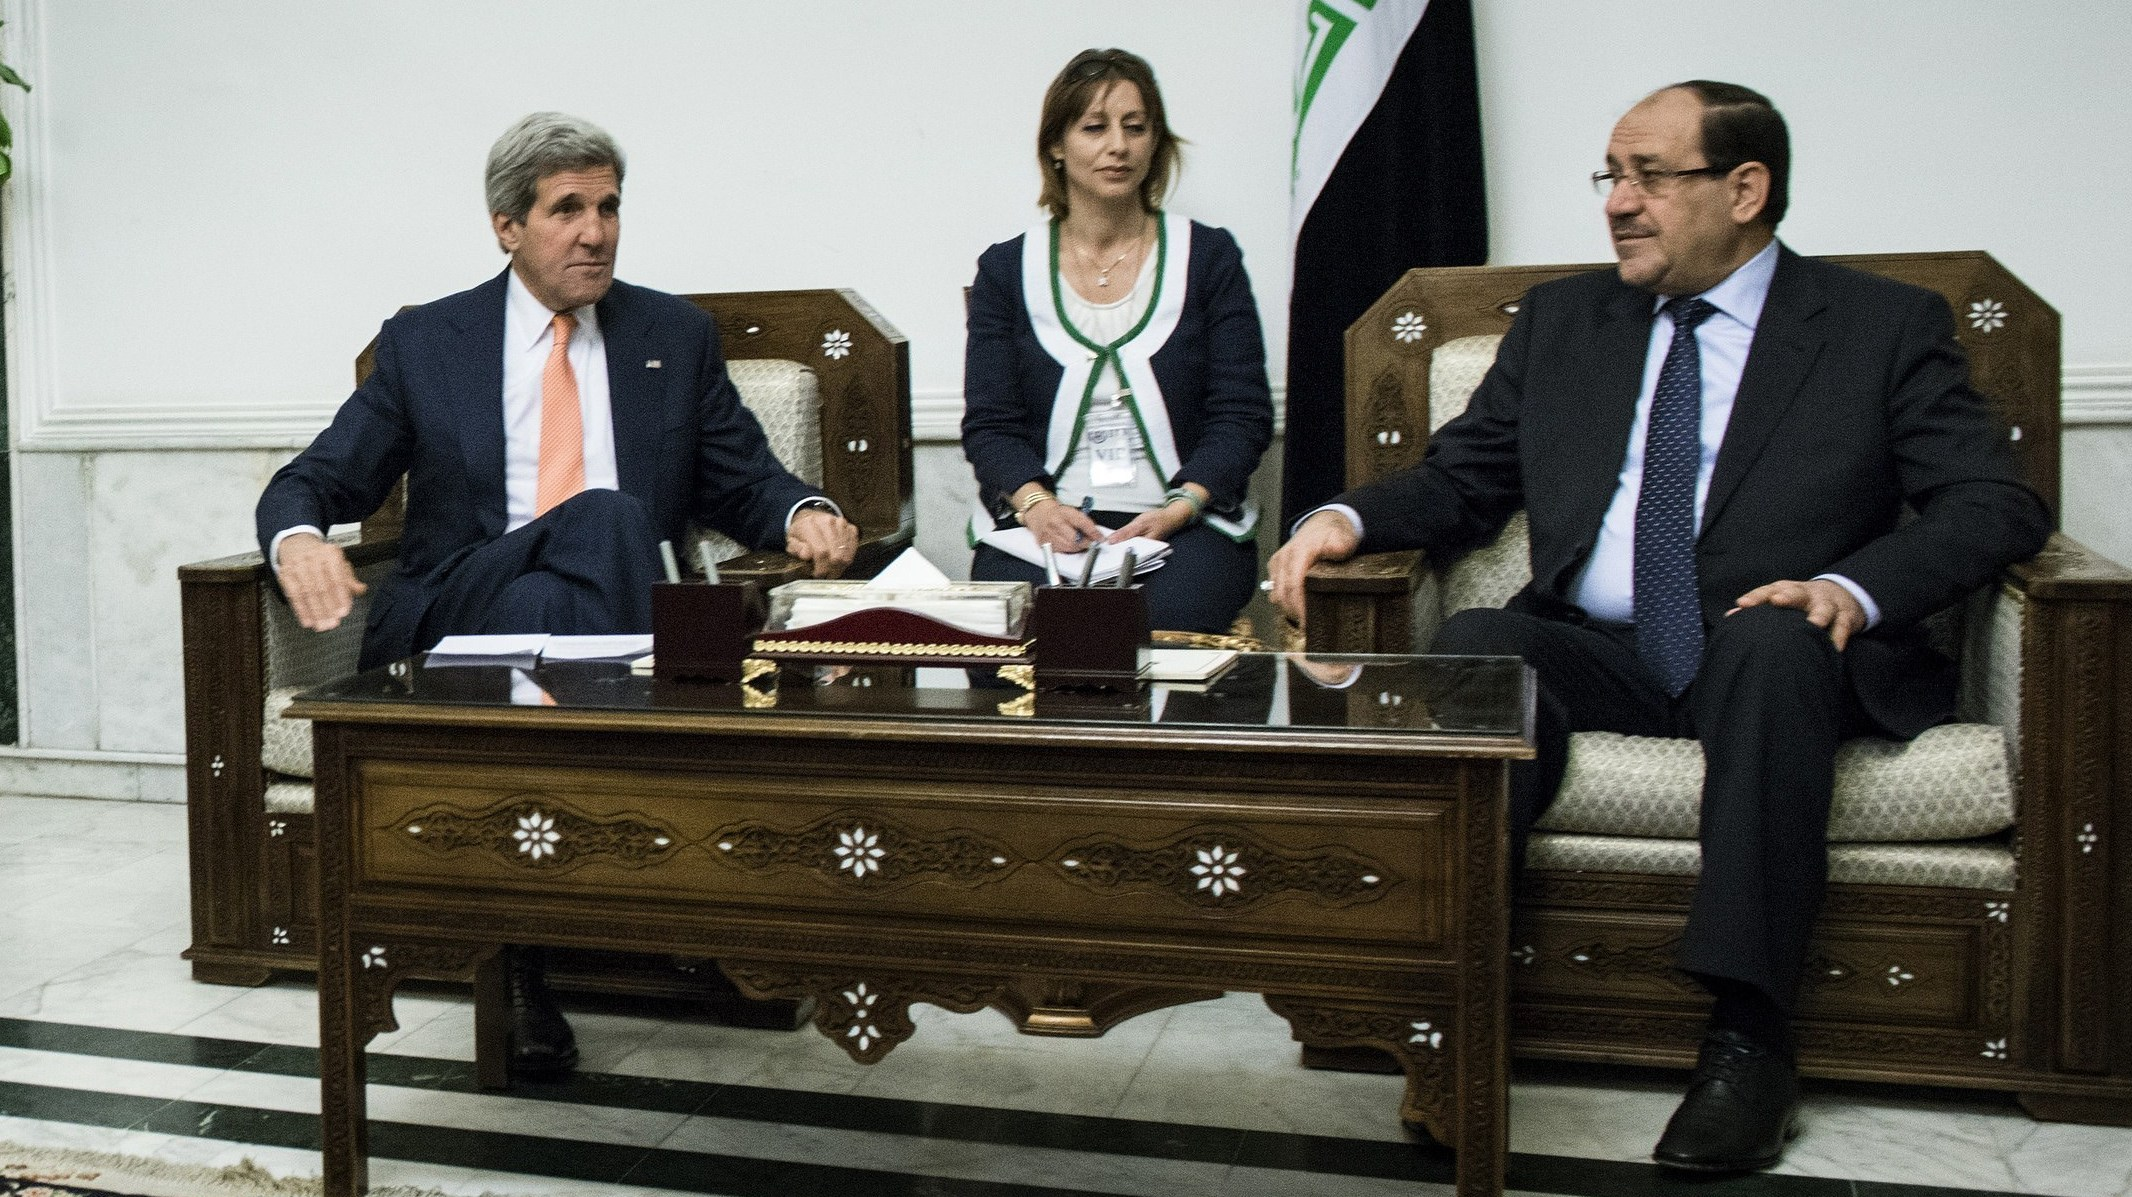 Kerry Meets With Iraqi Prime Minister In Baghdad Amid ISIS Crisis